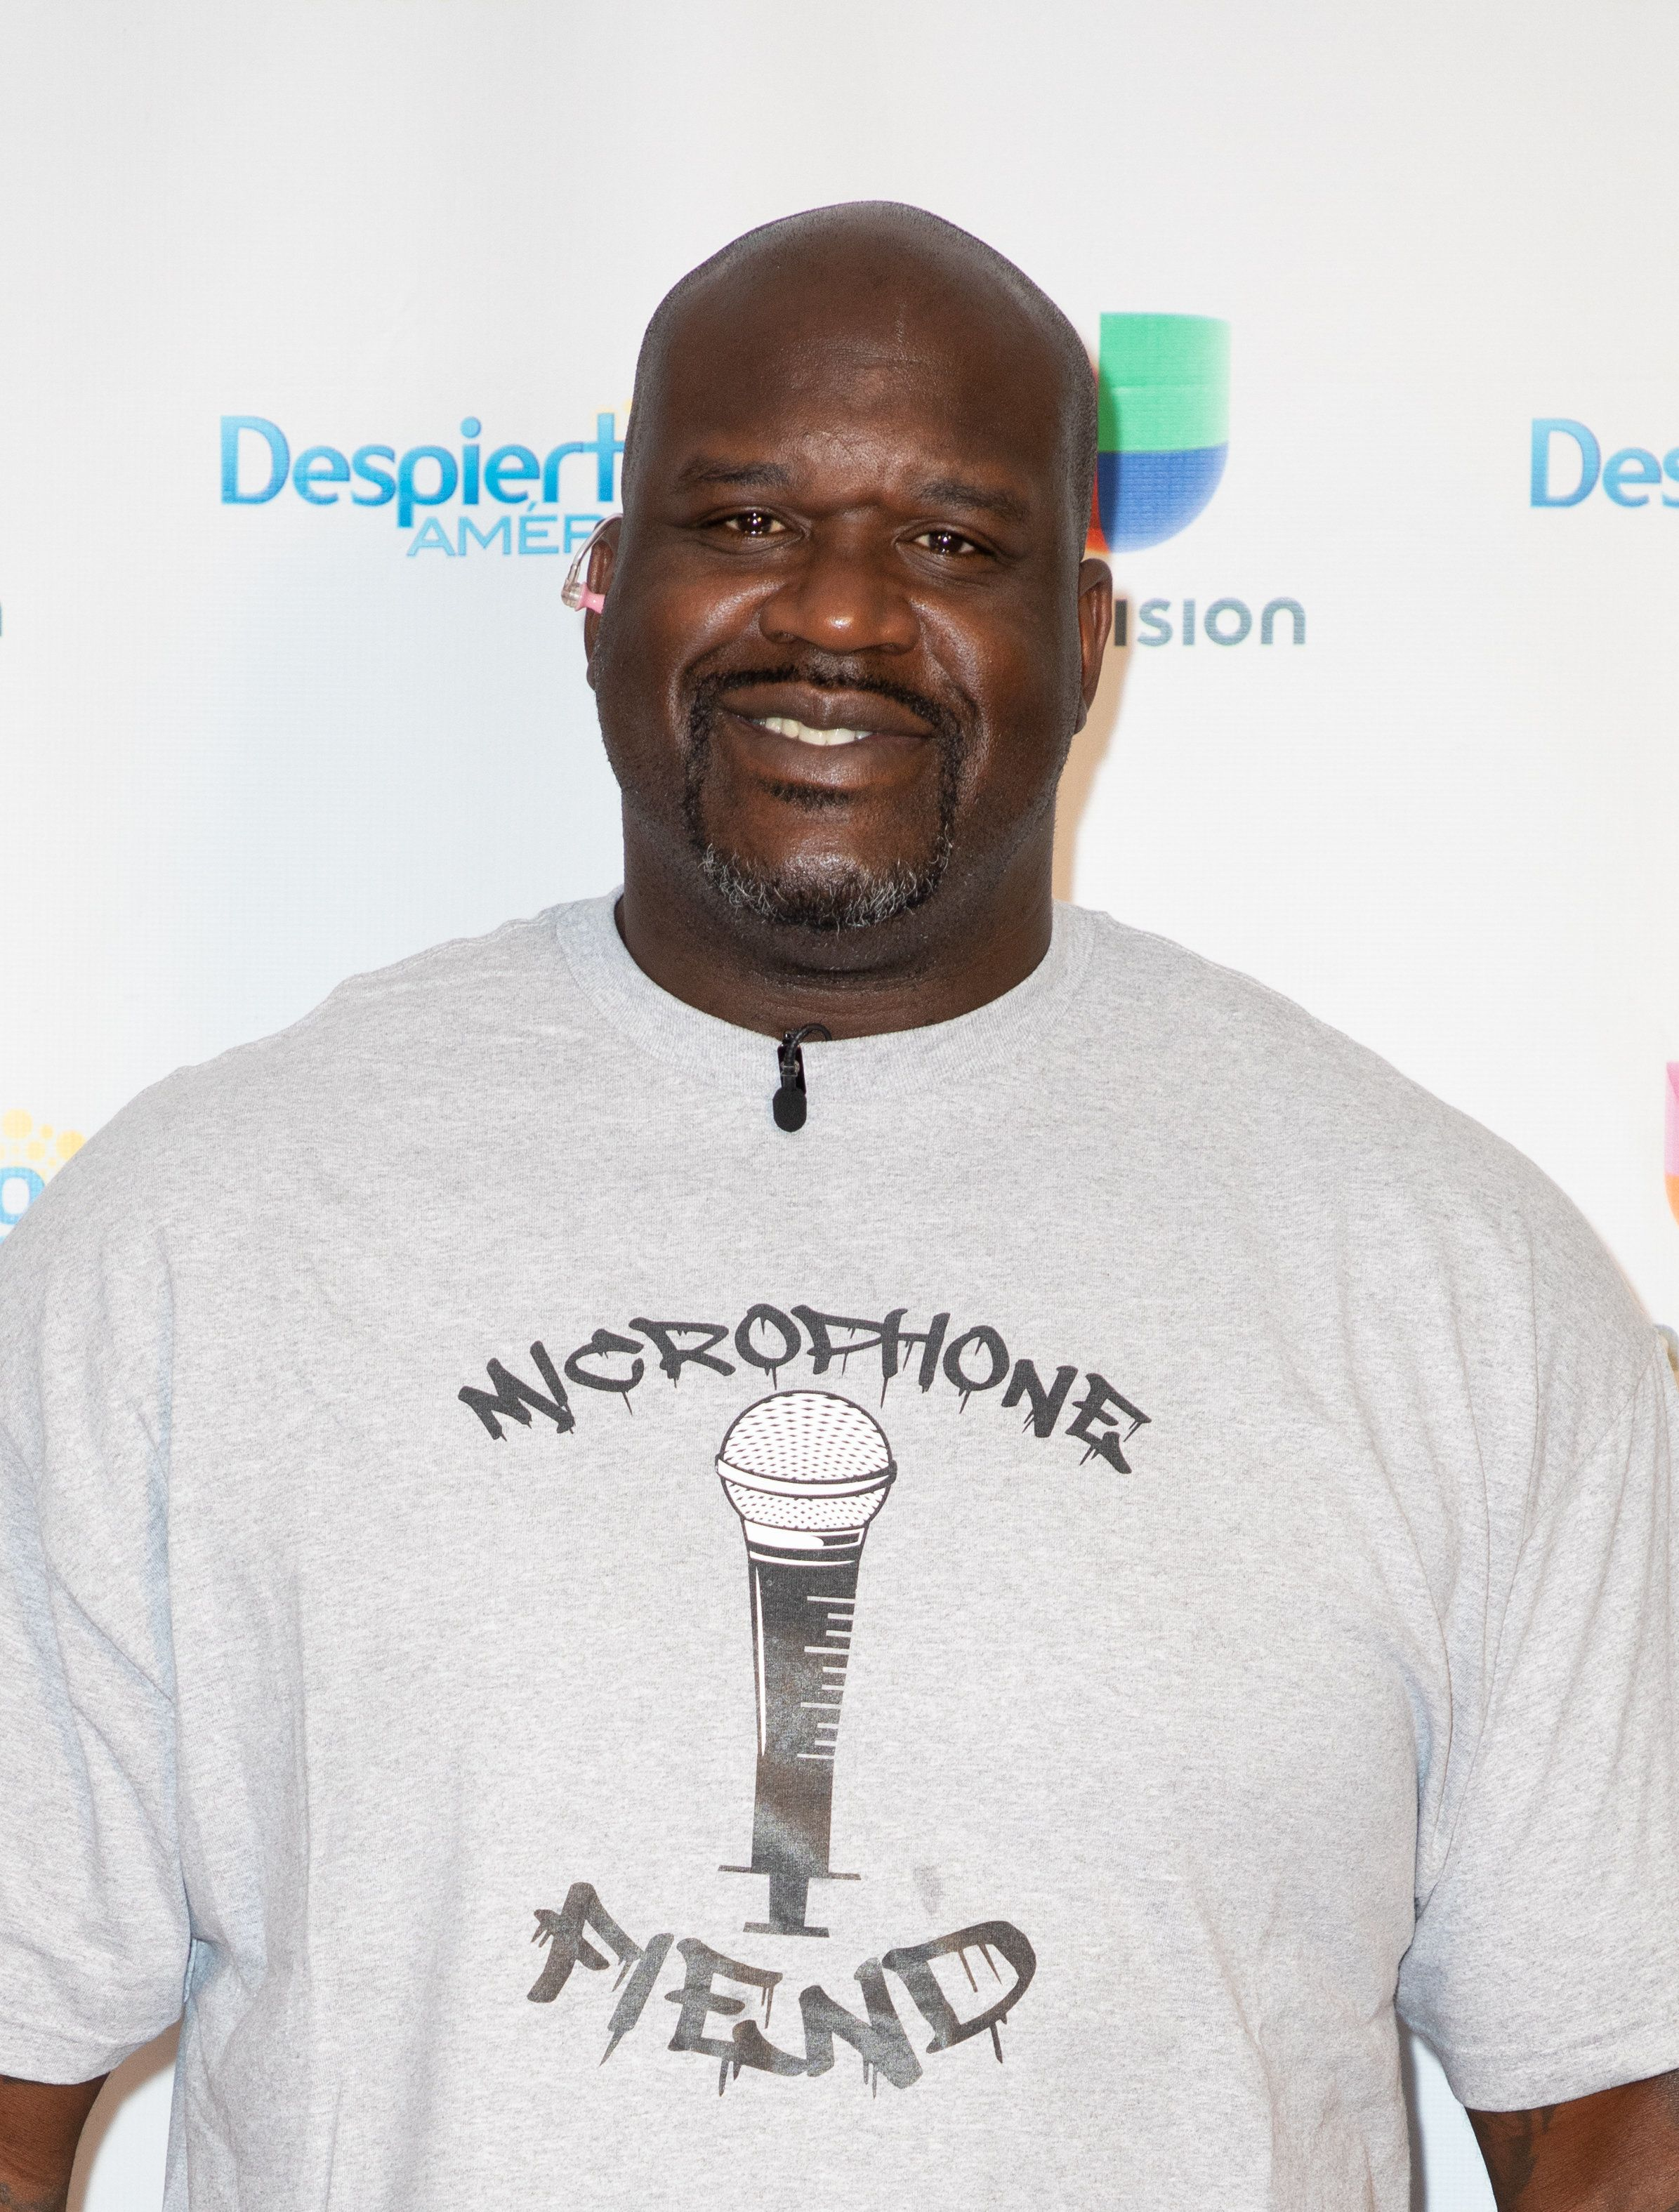 """MIAMI,FLORIDA-JUNE 28: Actor and former basketball player Shaquille O'Neal is seen during Univision's 'Despierta America' morning show to promote the up coming movie """"Uncle Drew"""" on June 28,2018 in Miami, Florida. (Photo by Alberto E. Tamargo/Sipa USA)"""